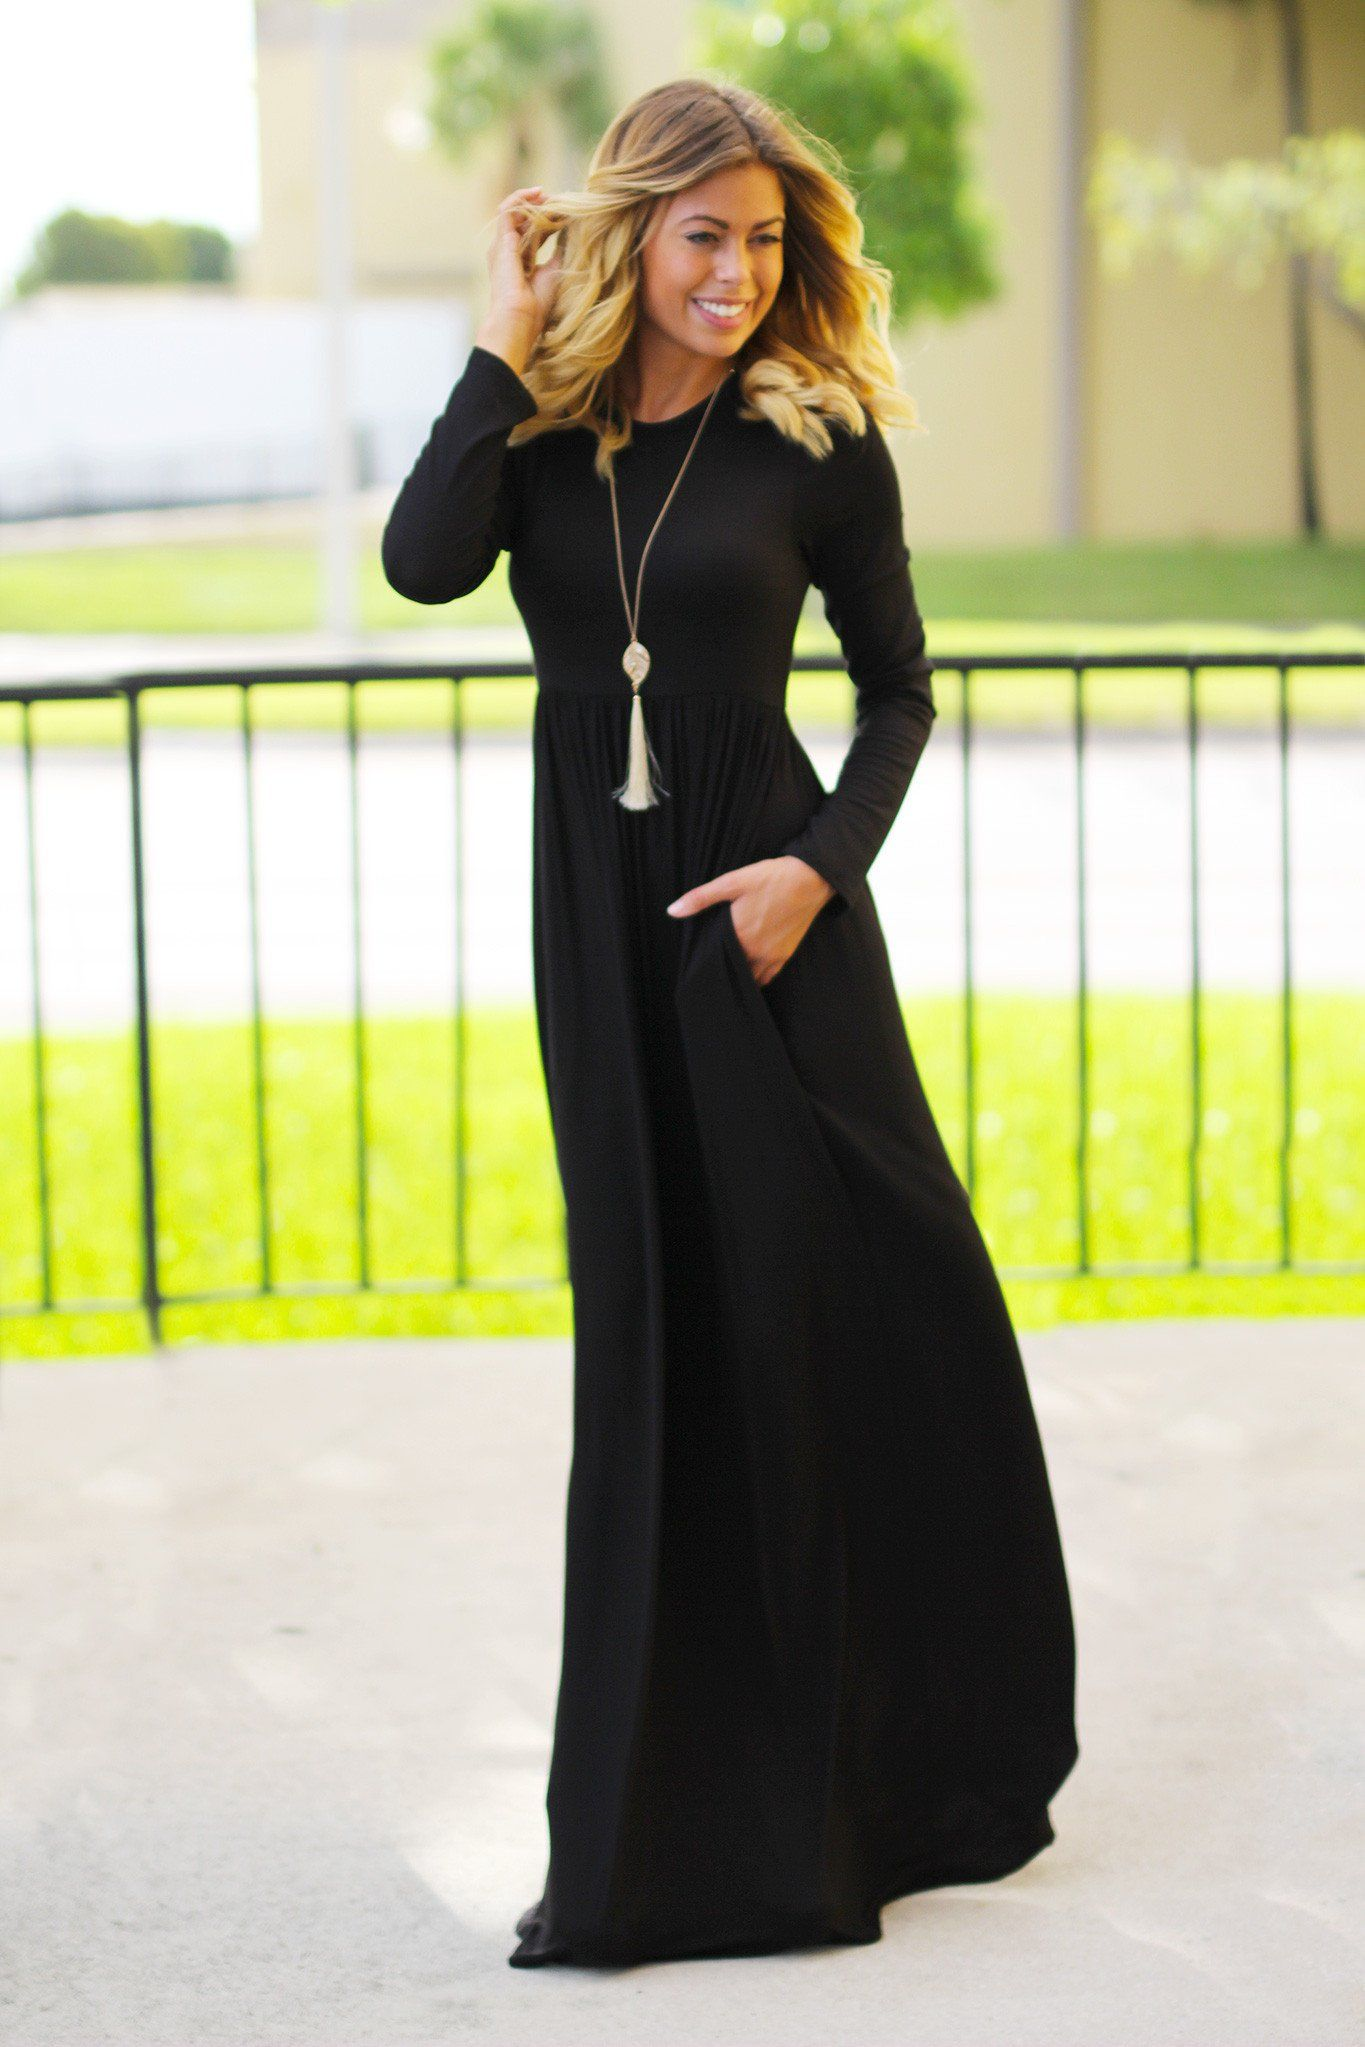 Long Sleeve Black Maxi Dress with Pockets | Fall maxi dresses ...